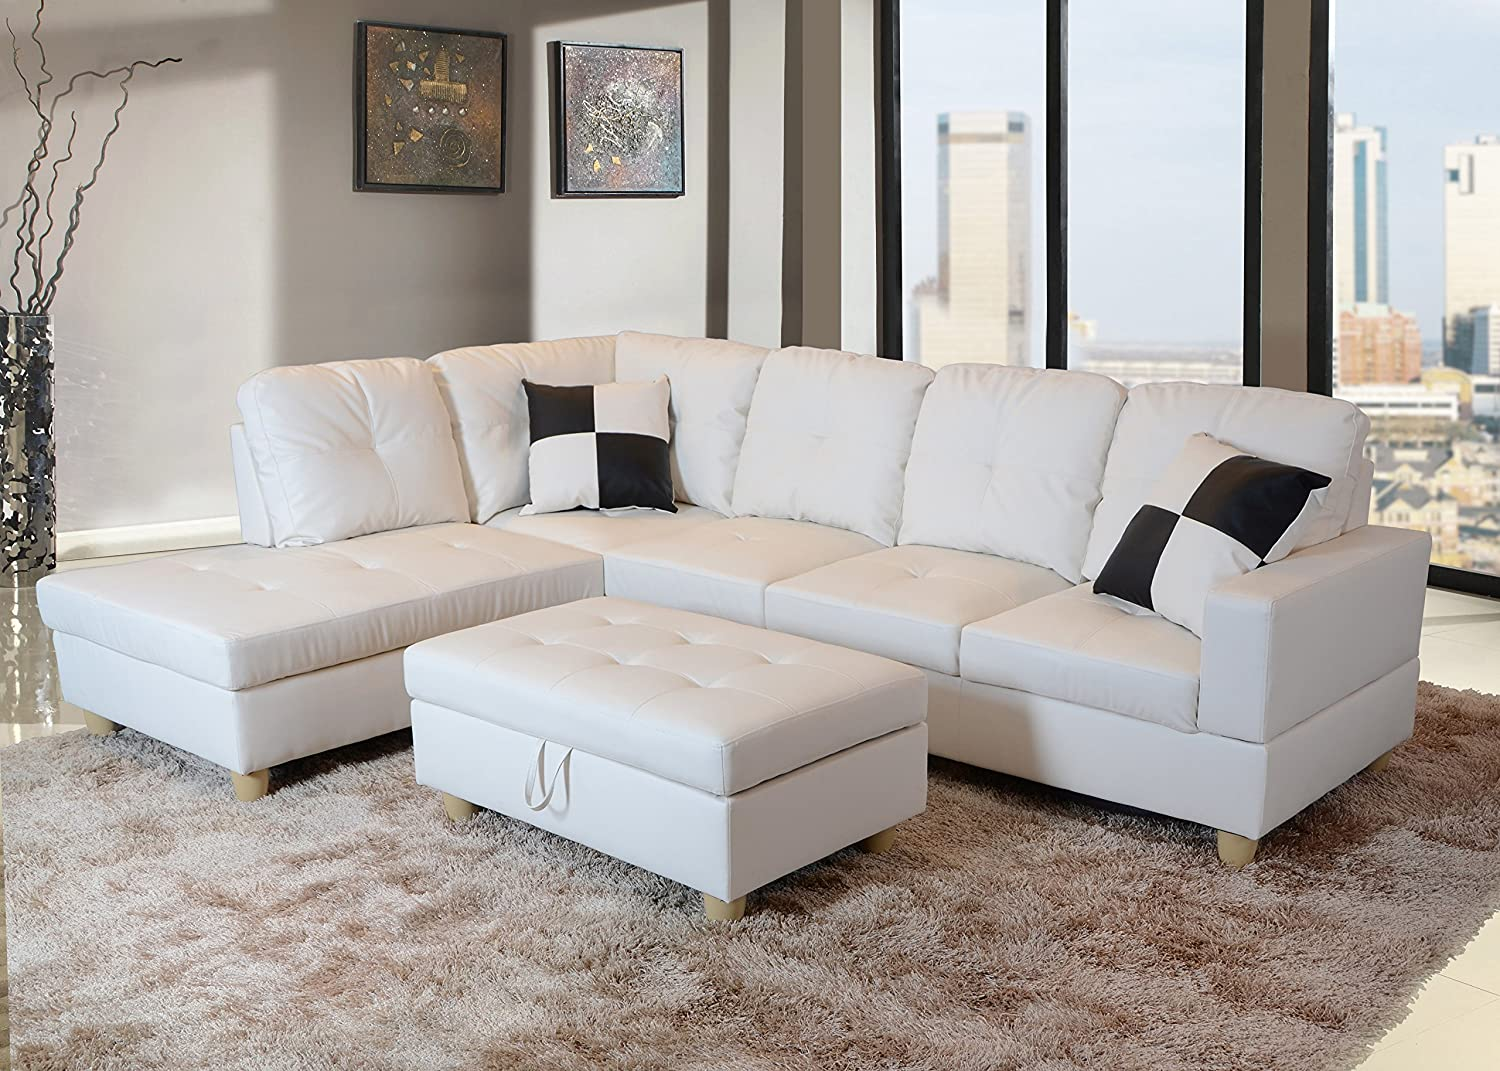 Amazon.com: Beverly Fine Furniture Left Facing Russes Sectional Sofa Set With Ottoman, White: Furniture & Decor